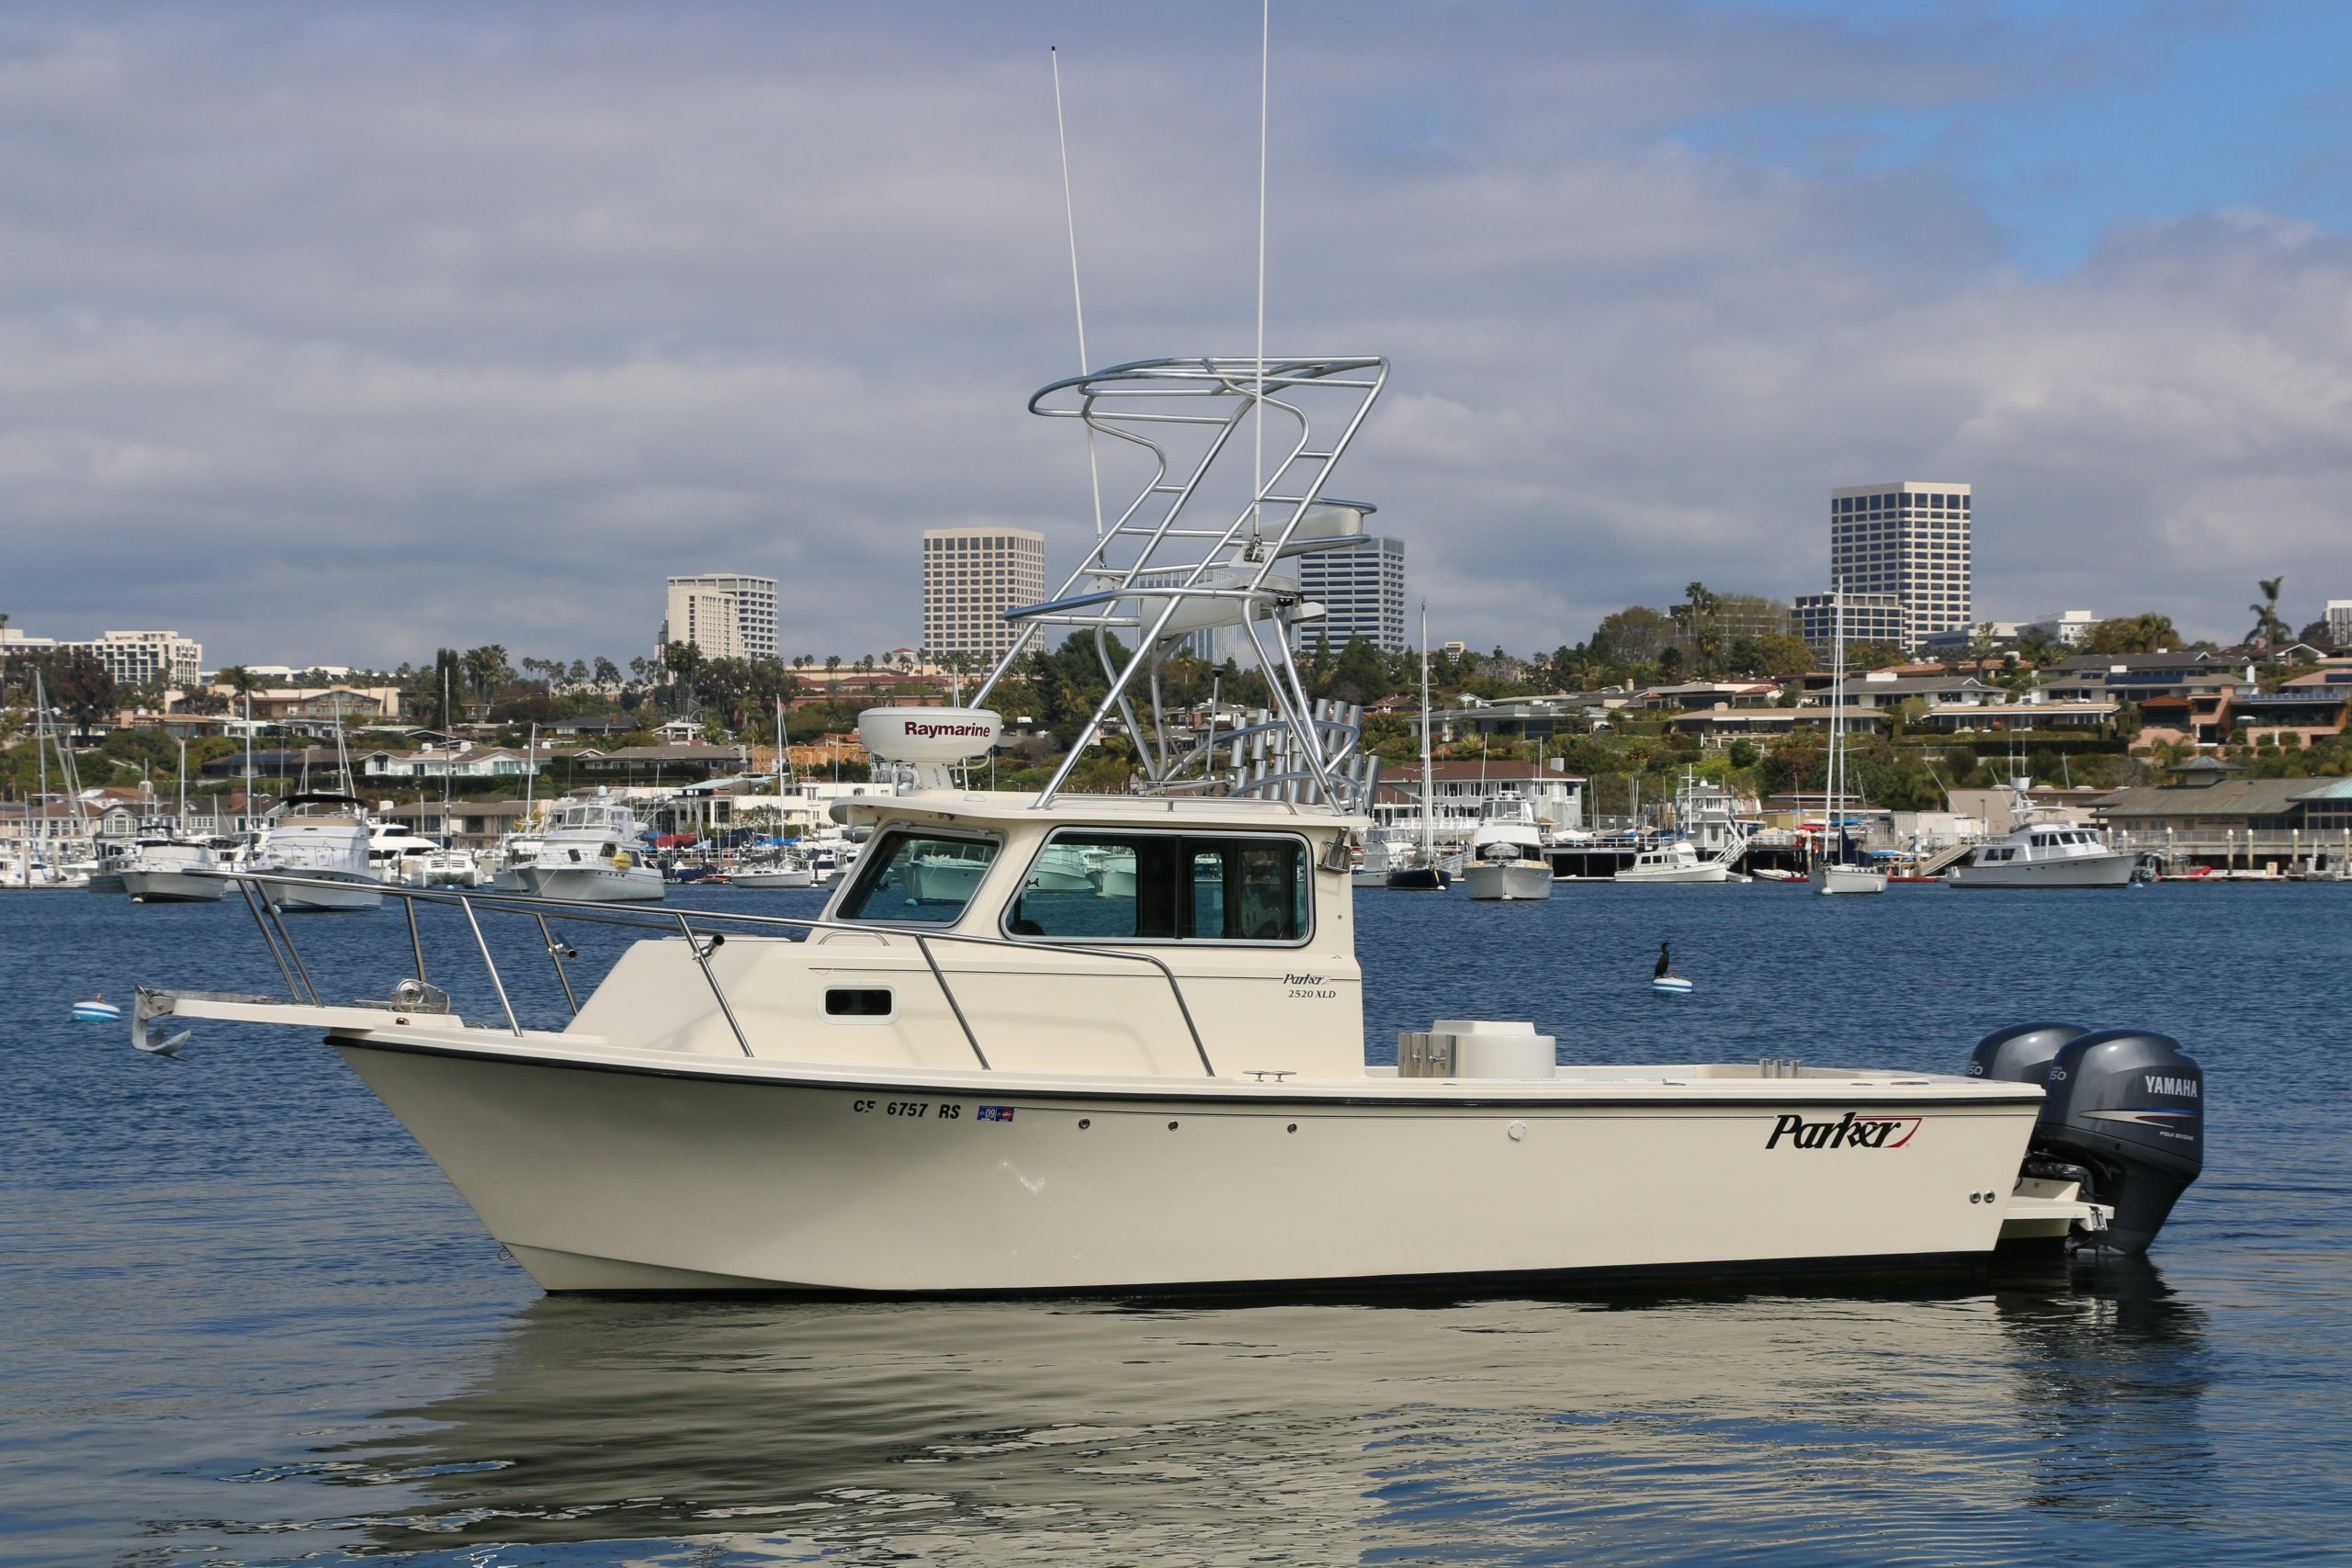 Boats For Sale Archive - Page 13 of 18 - Kusler Yachts